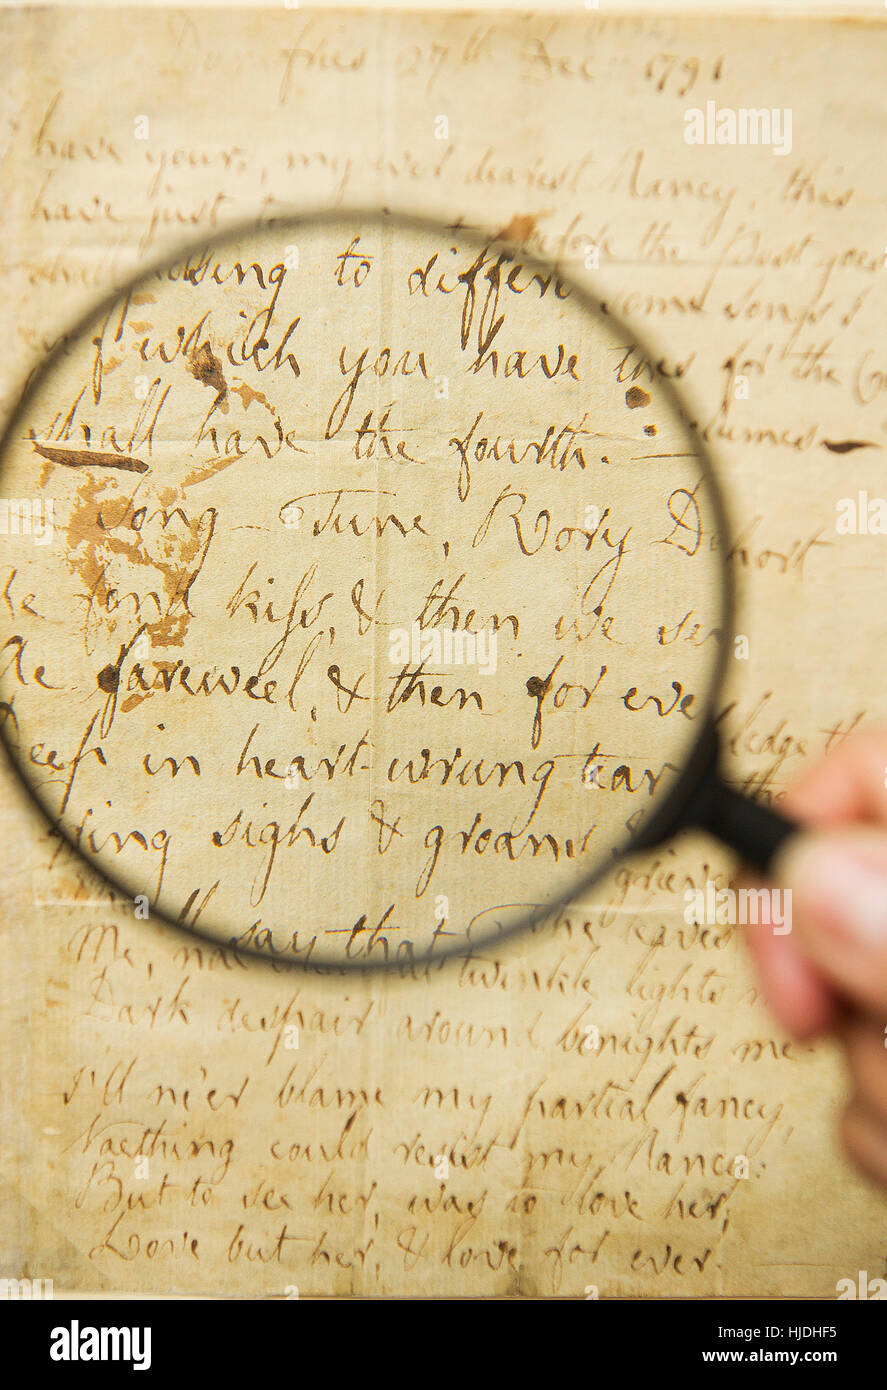 Glasgow, Scotland, UK. 25th January 2017. The fragile original manuscript of one of Robert BurnsÕ most famous - Stock Image